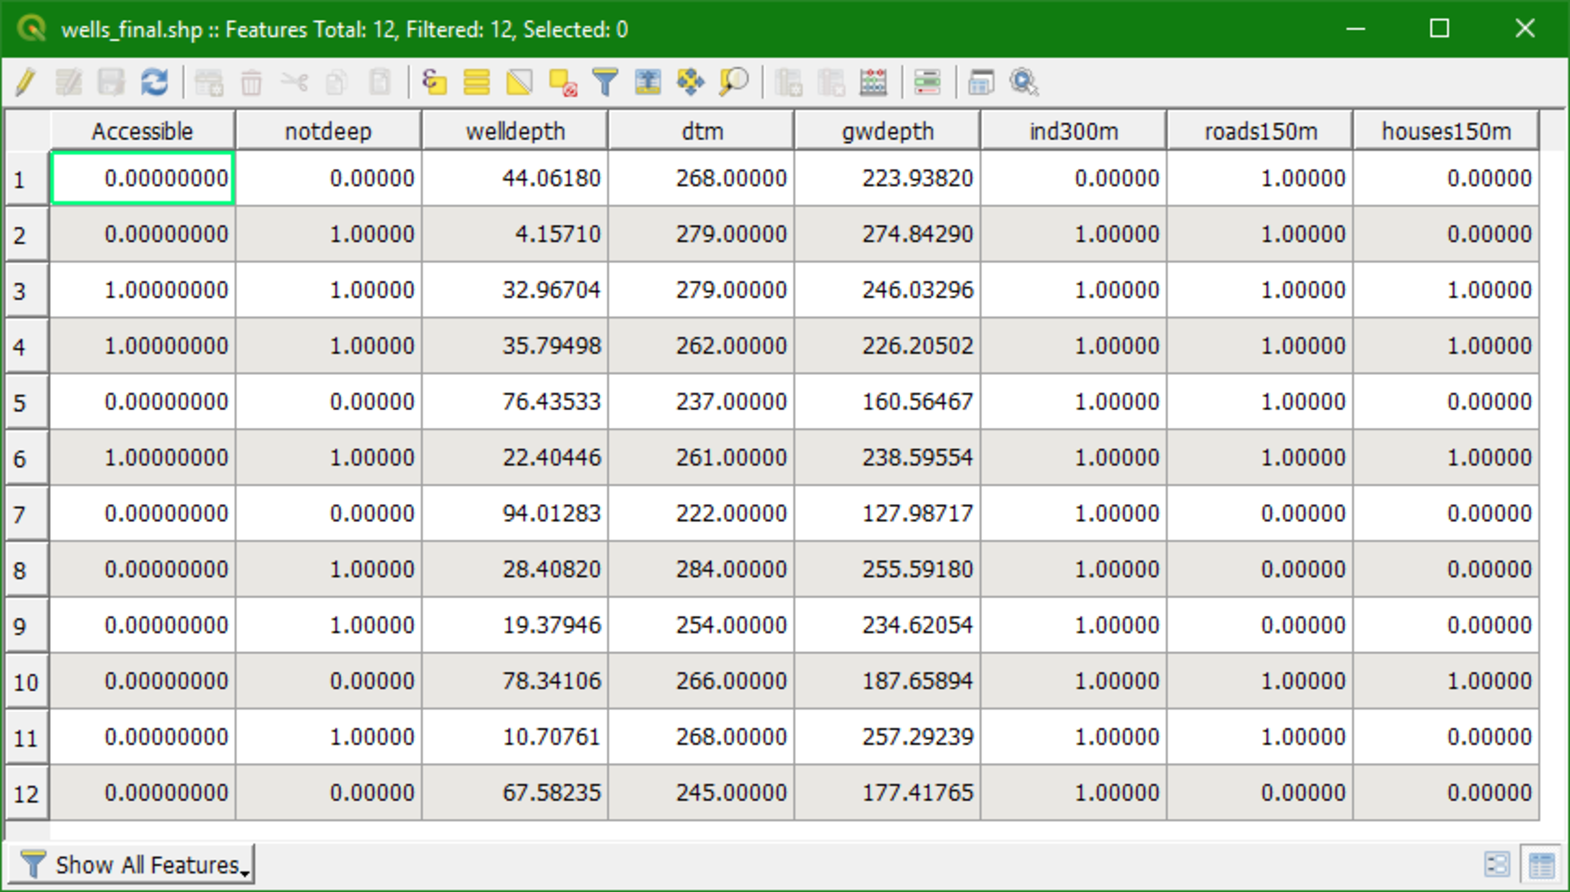 wells final attribute table